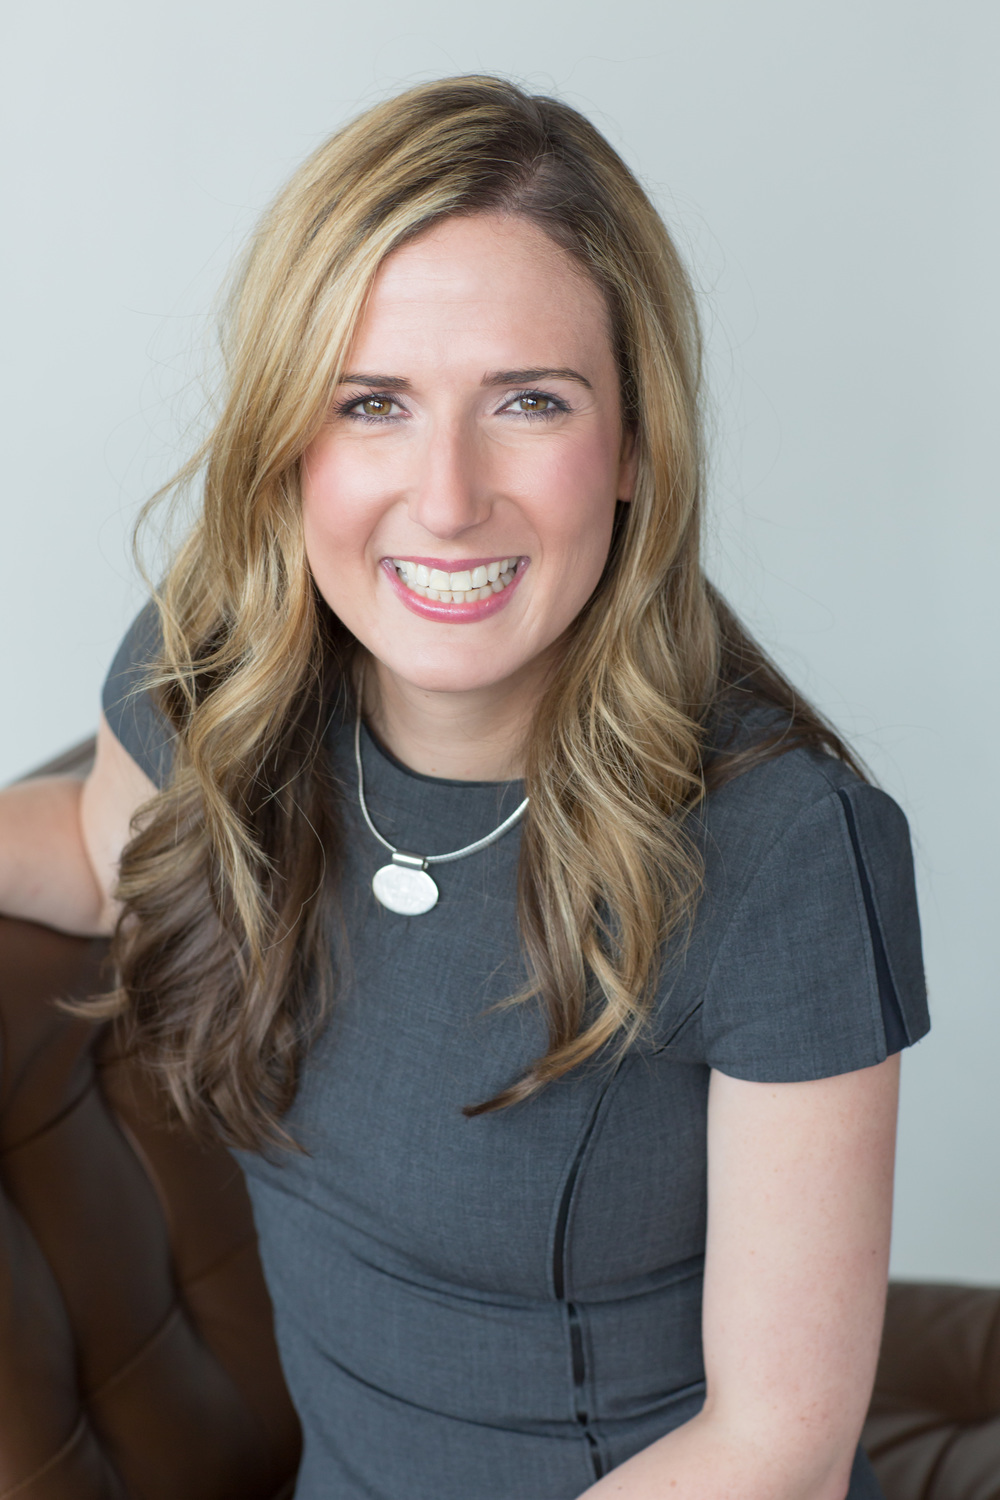 Kate Hoffmann Interior Design Business Manager and Project Manager